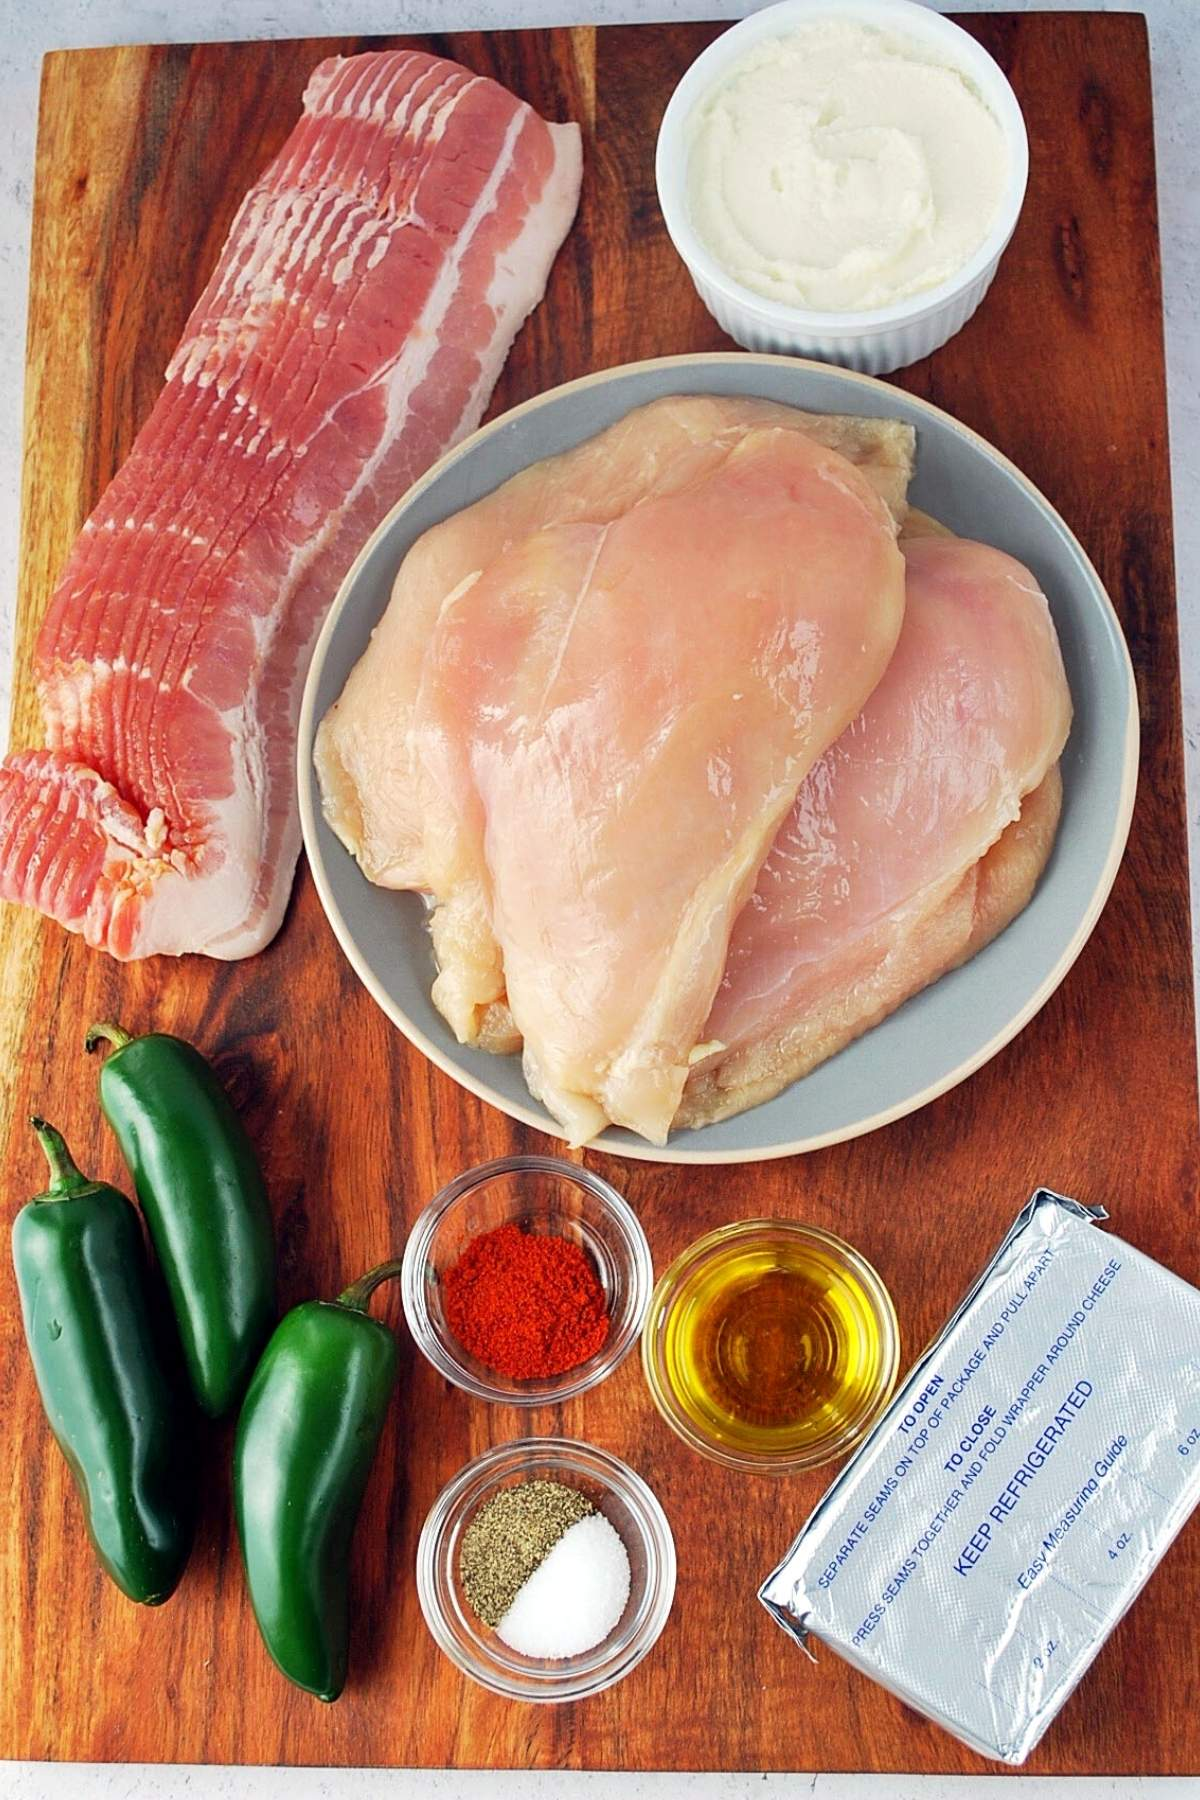 ingredients for bacon-wrapped stuffed chicken on a cutting board